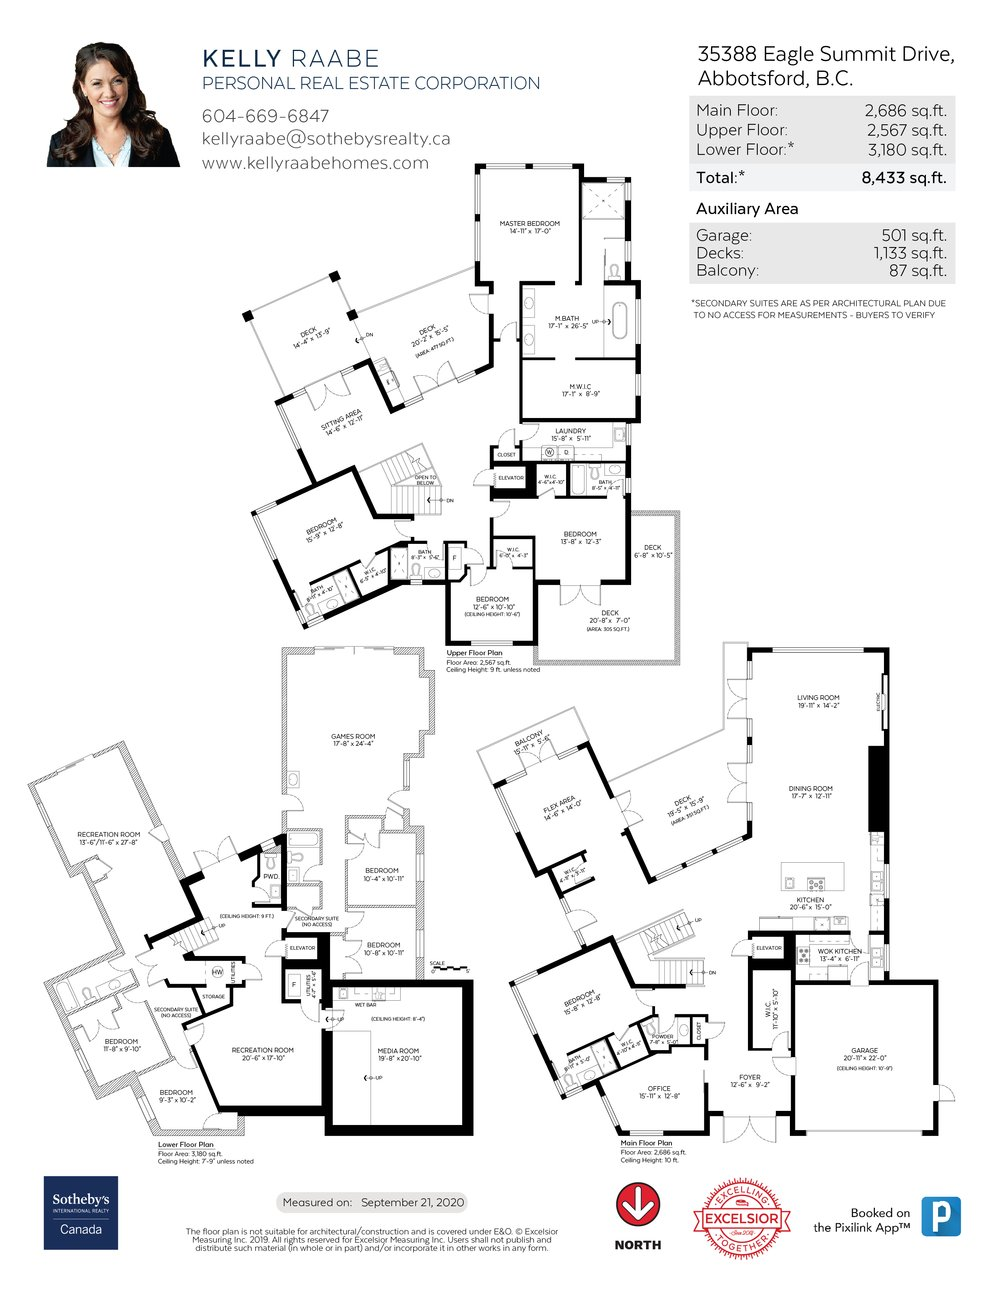 Floor Plan for a 9 Bedroom House in